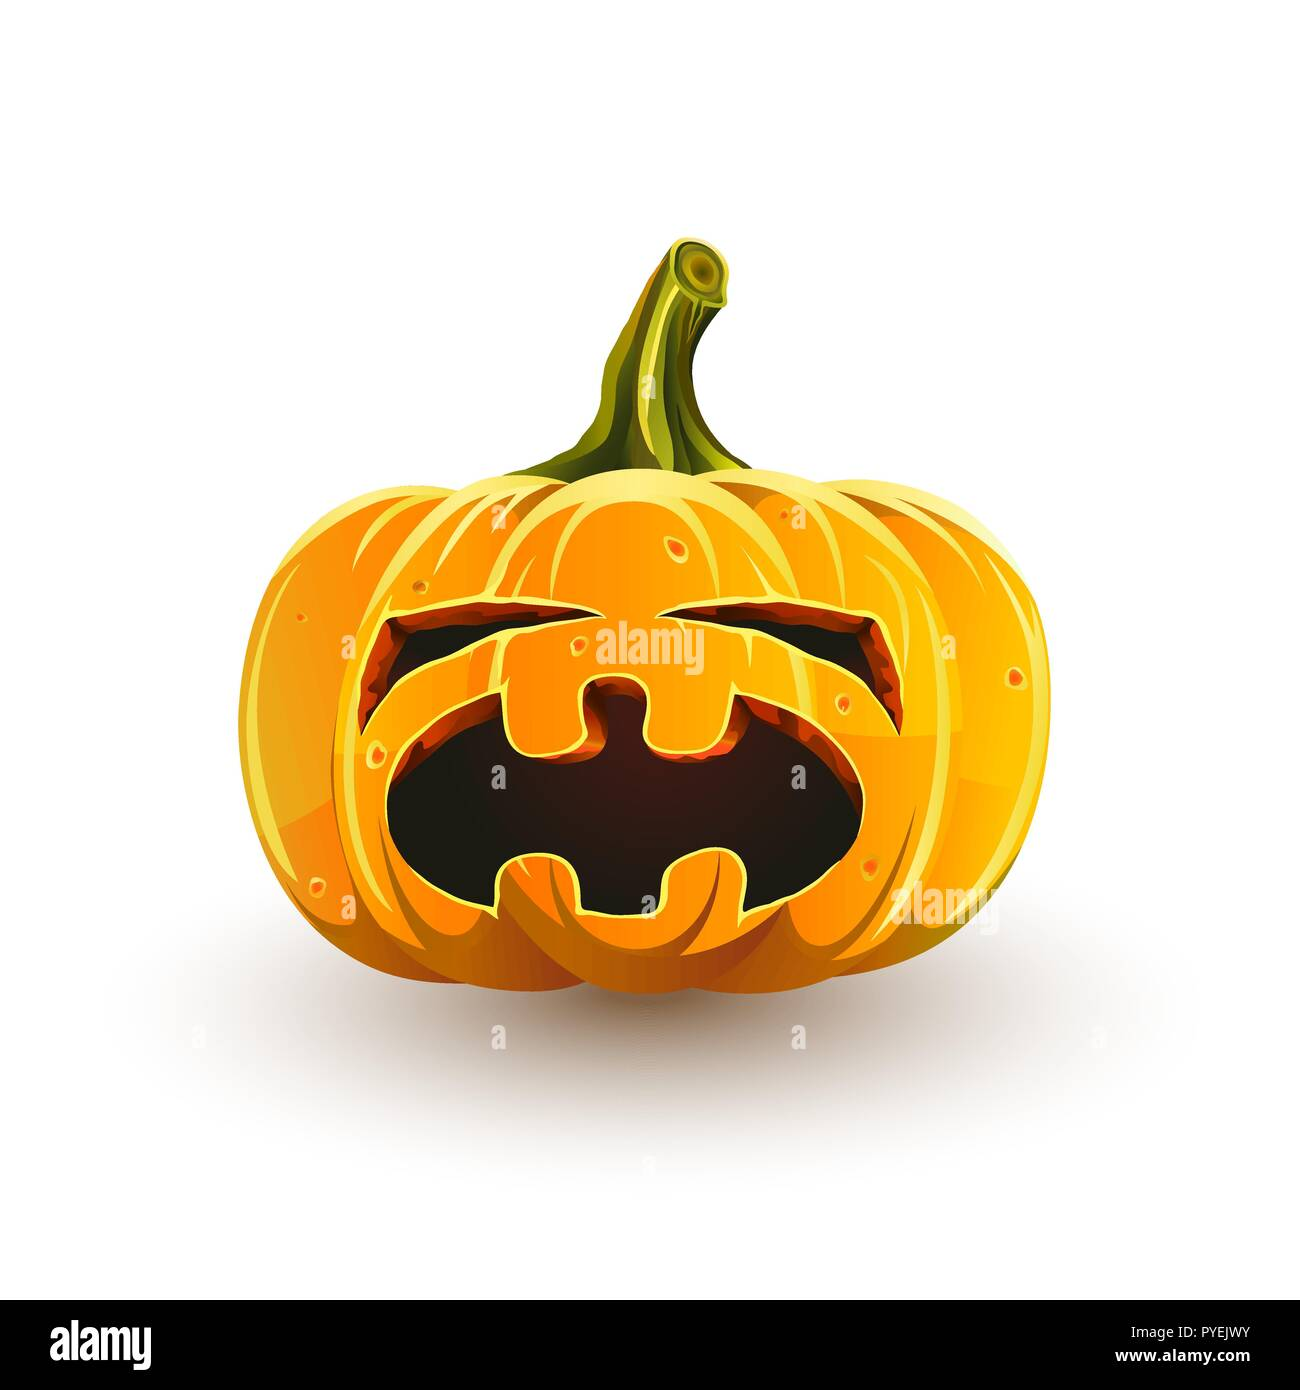 Crying Halloween pumpkin. Jack-o'-lantern for Halloween isolated on white background - Stock Vector